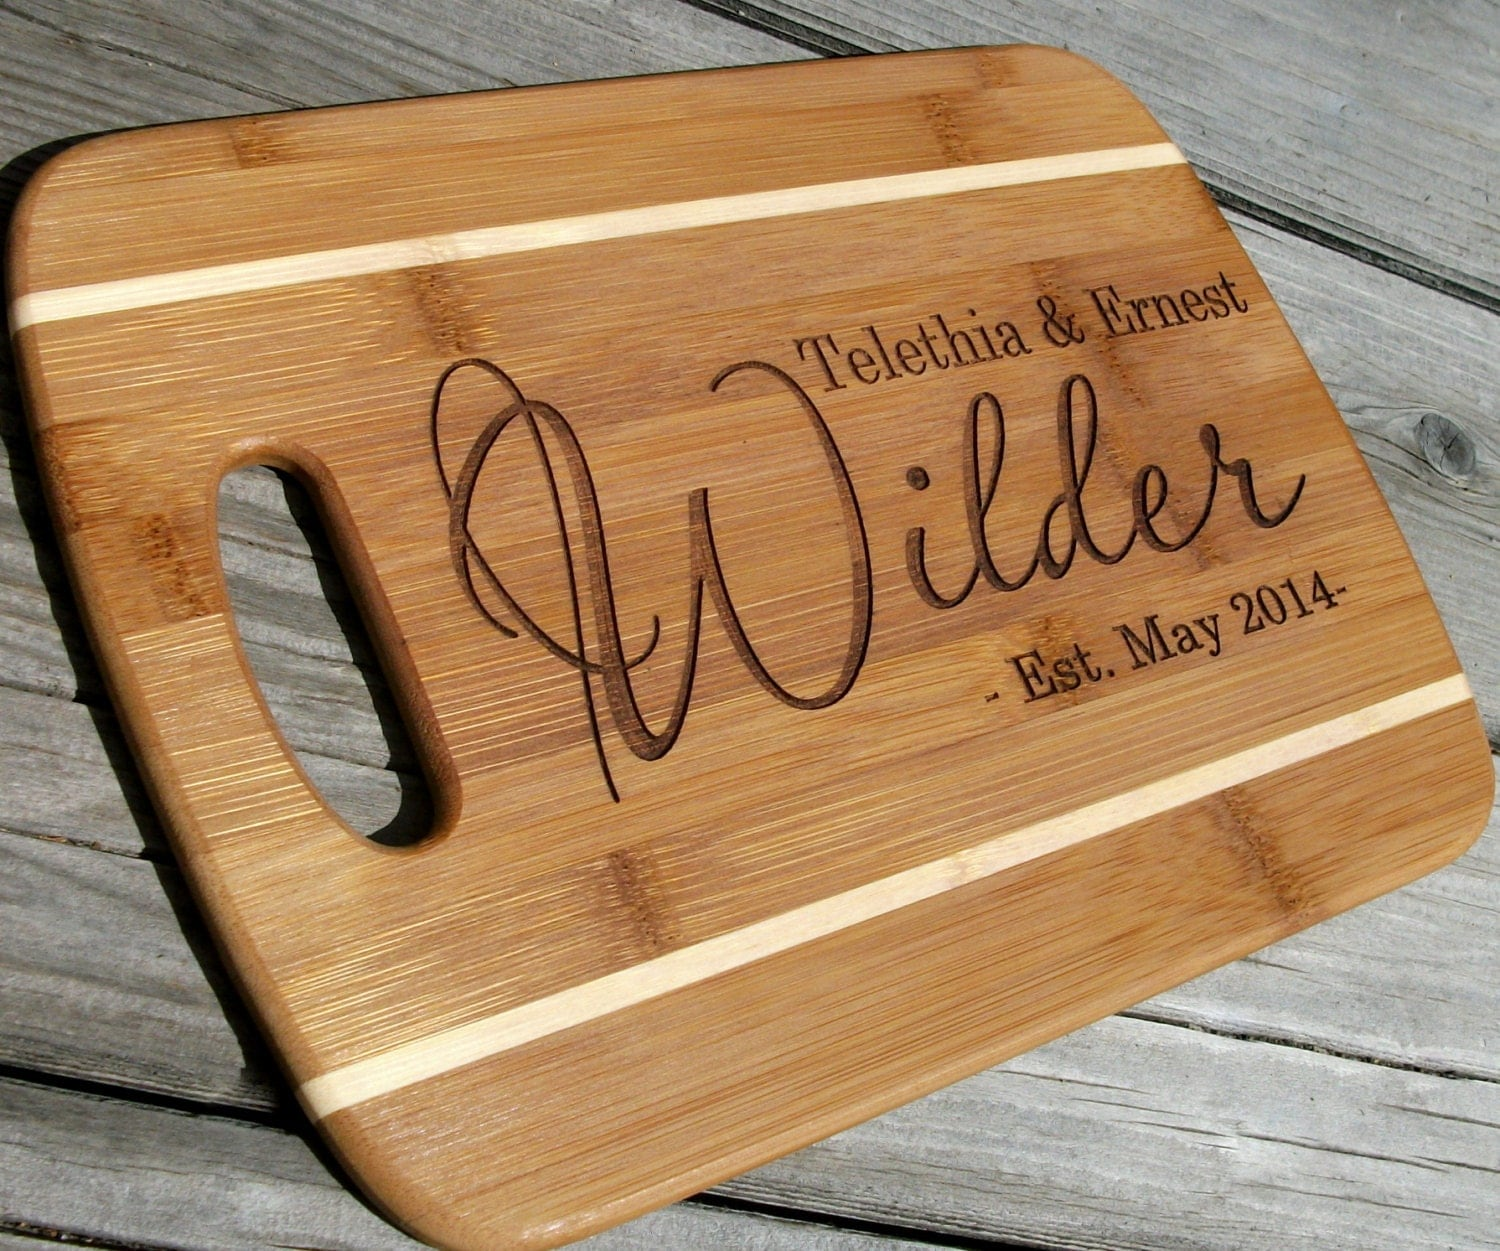 Personalized Cutting Boards ~ Custom cutting board personalized bamboo cheese tray wedding